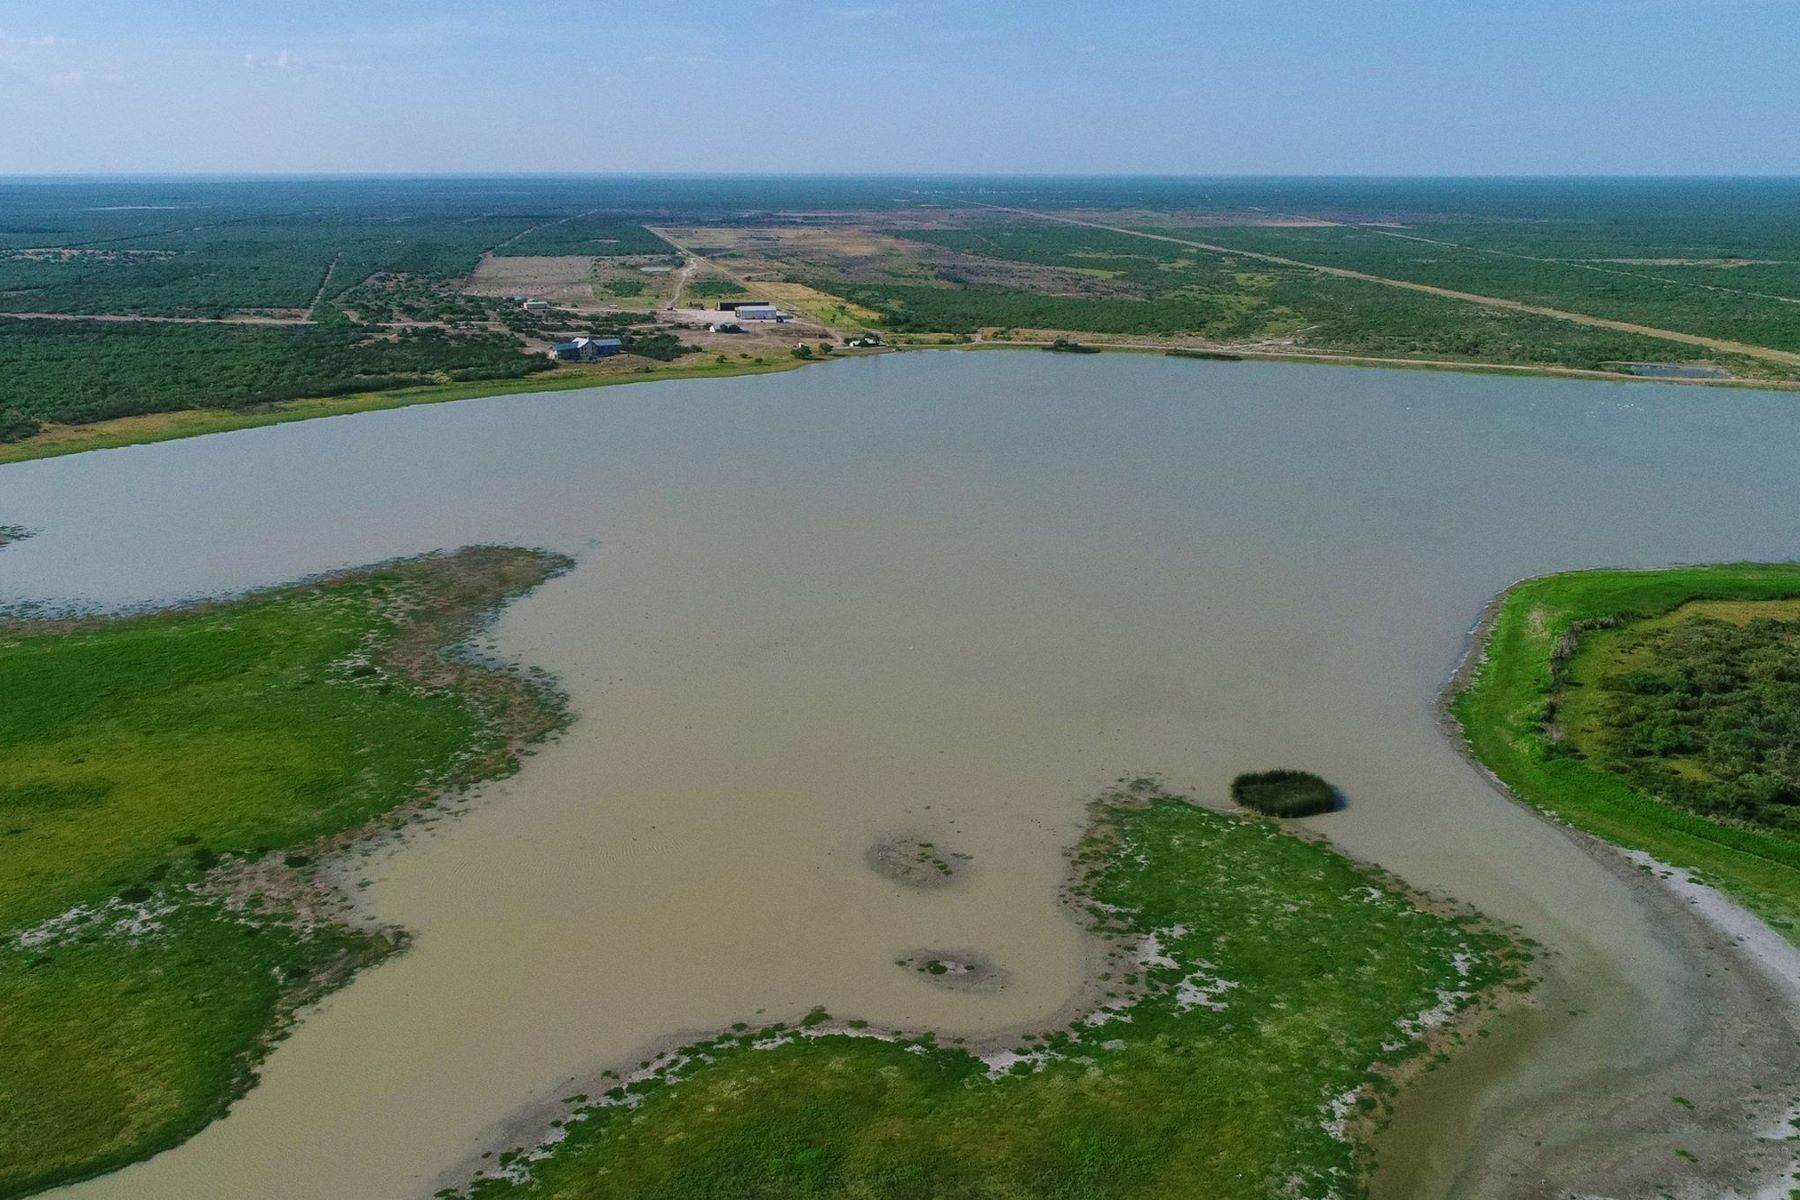 Farm and Ranch Properties for Sale at 8,988+/- Acres Covernant Ranch, Webb County, Webb County , TX 99999 8,988+/- Acres Covernant Ranch, Webb County Freer, Texas 78046 United States